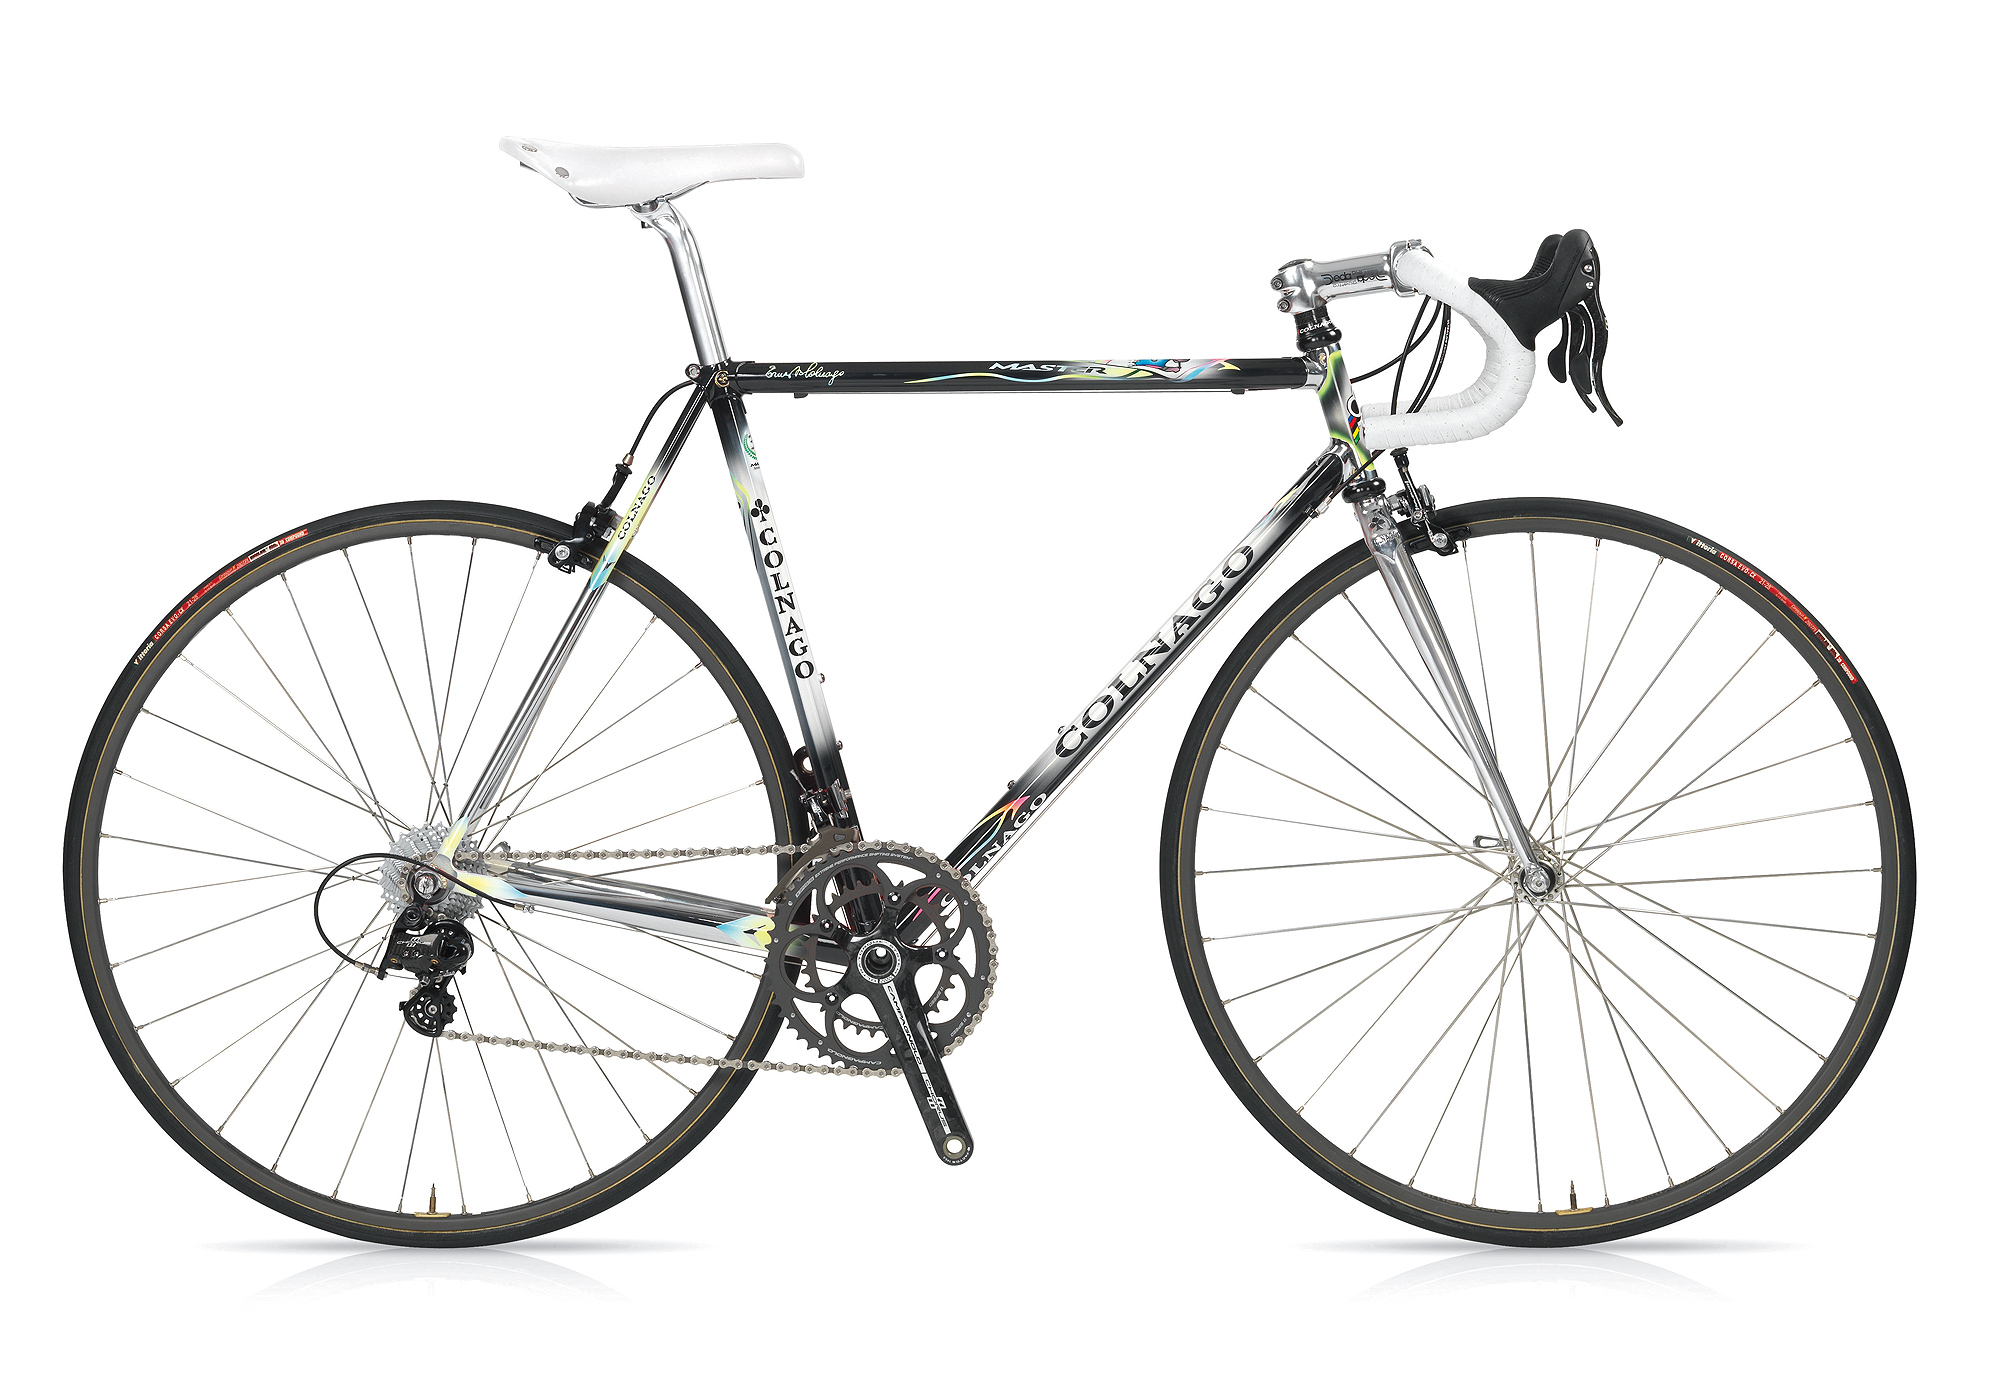 MASTER X-LIGHT 30th ANNIVERSARY FRAMESET